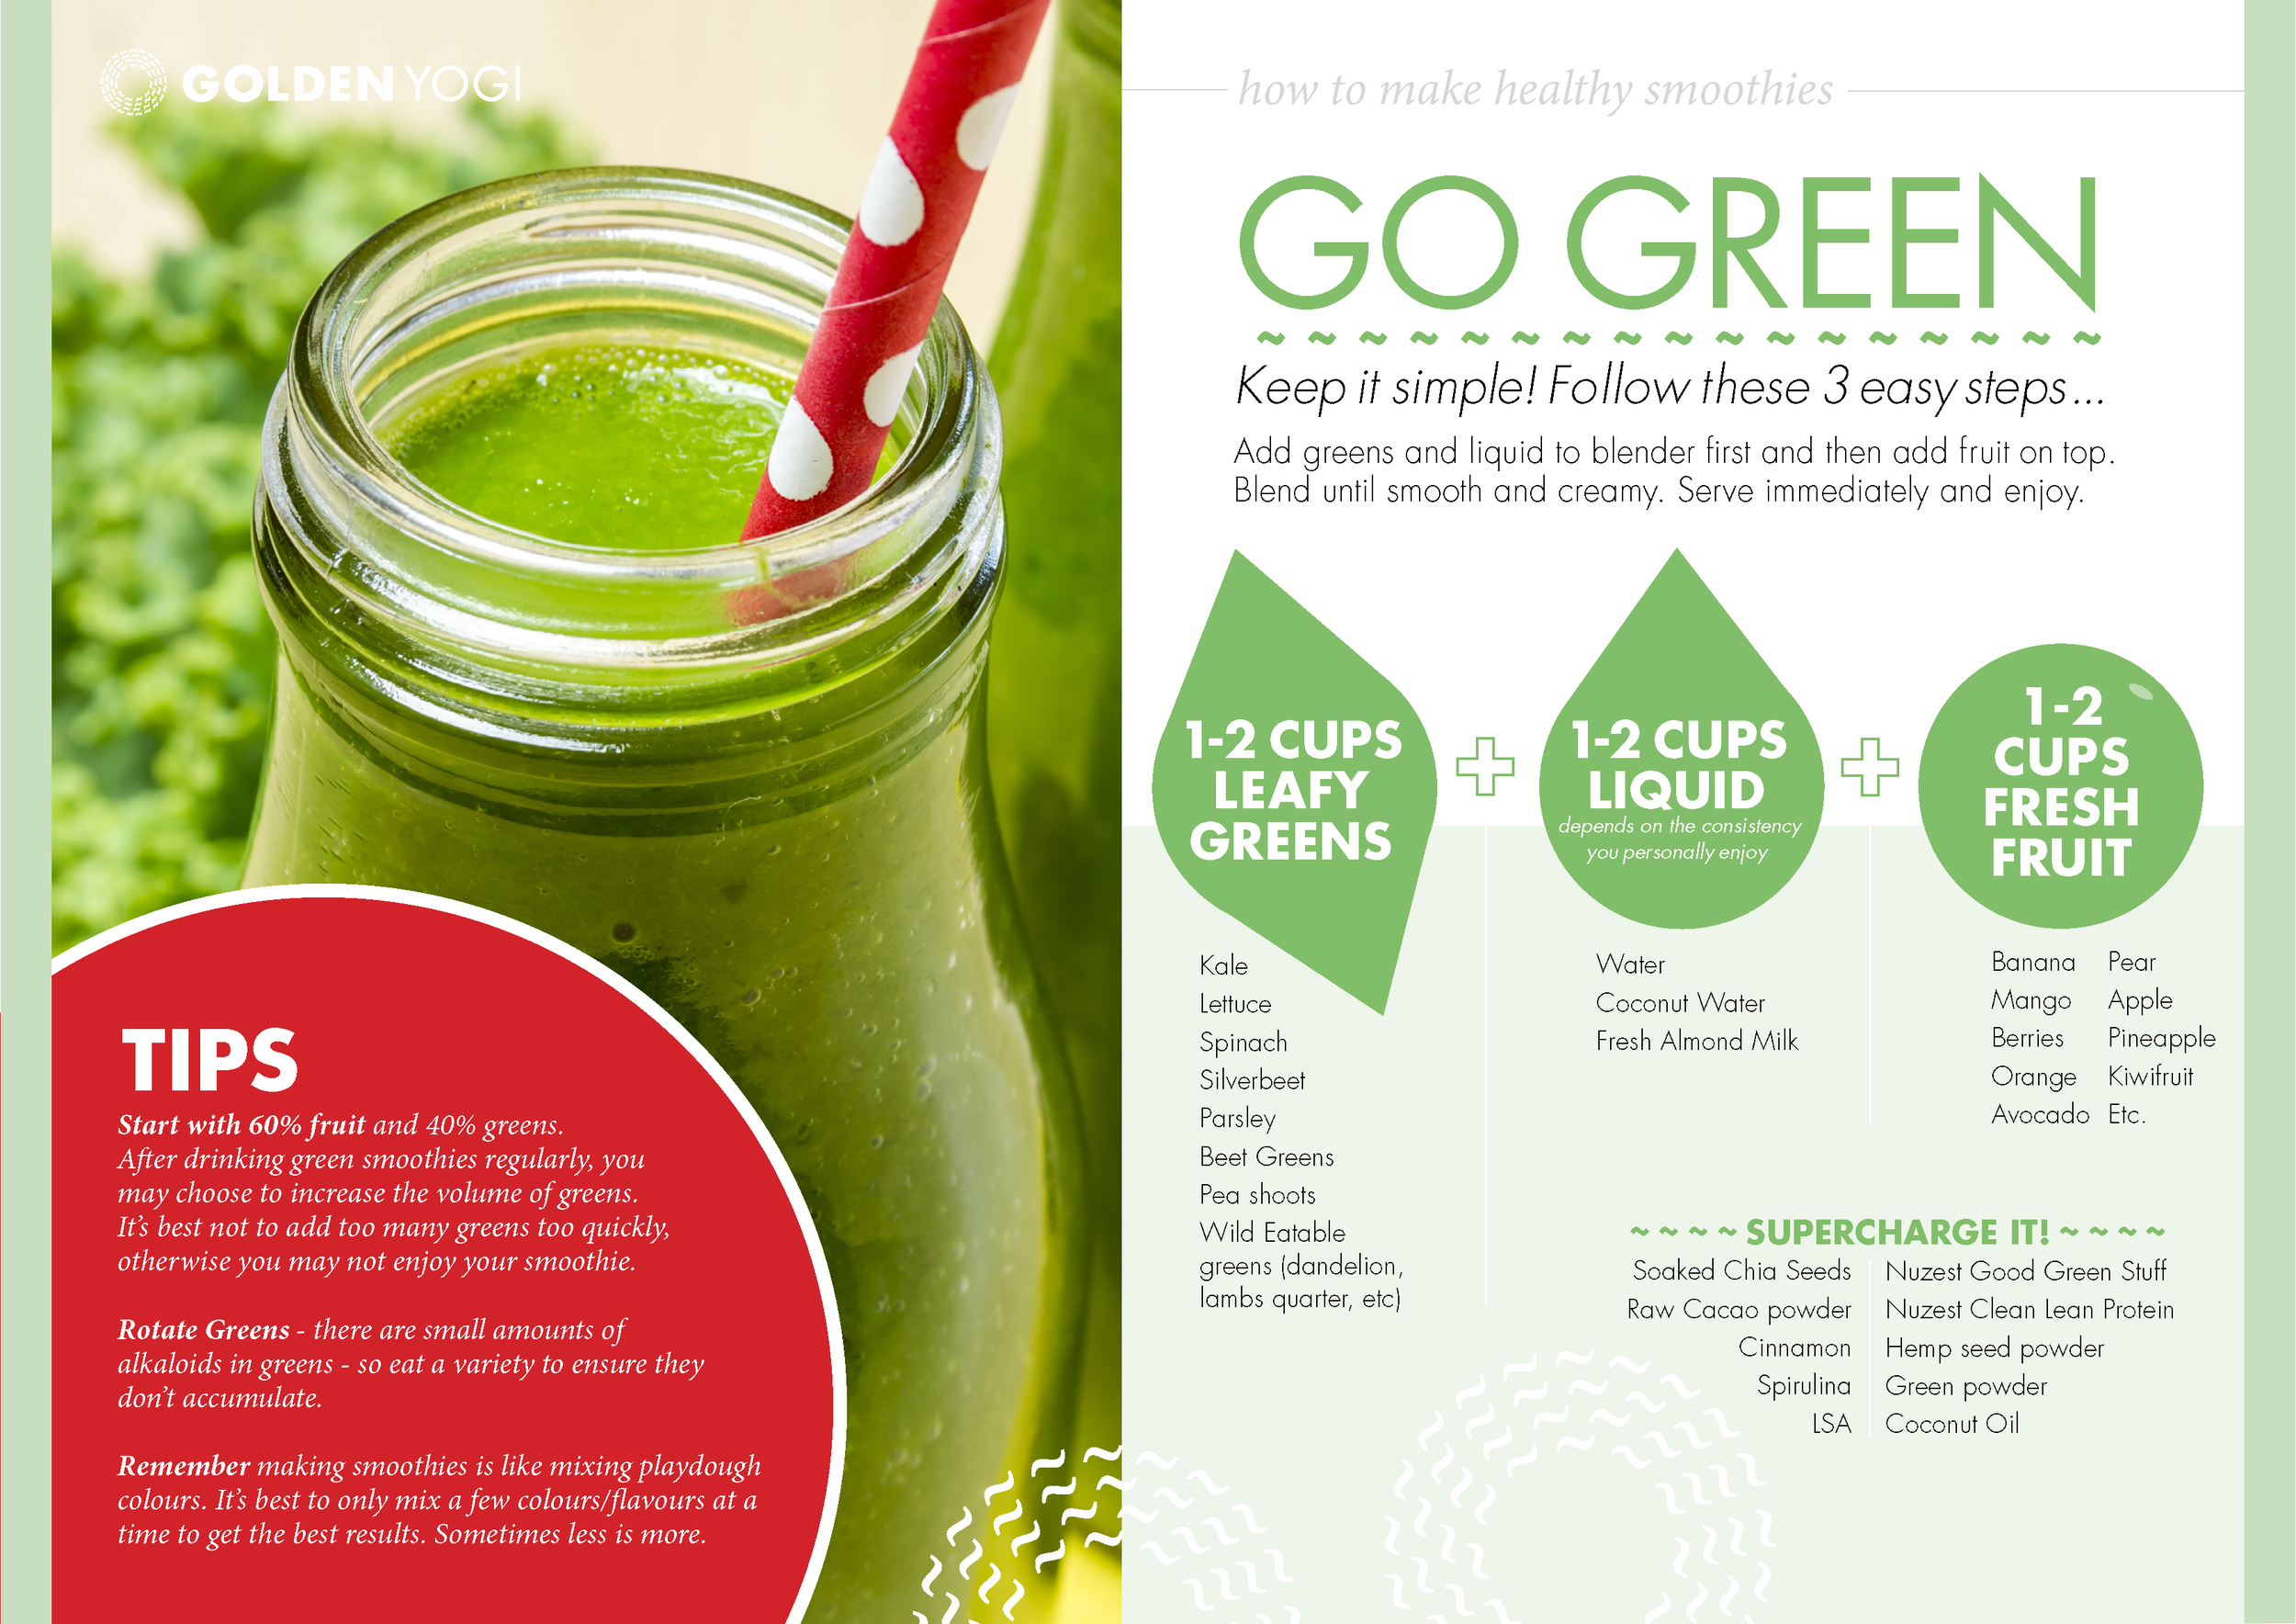 © 2014 Golden Yogi Ltd. All rights reserved. This infographic is a sample page from our Cleanse and Green Smoothie books.